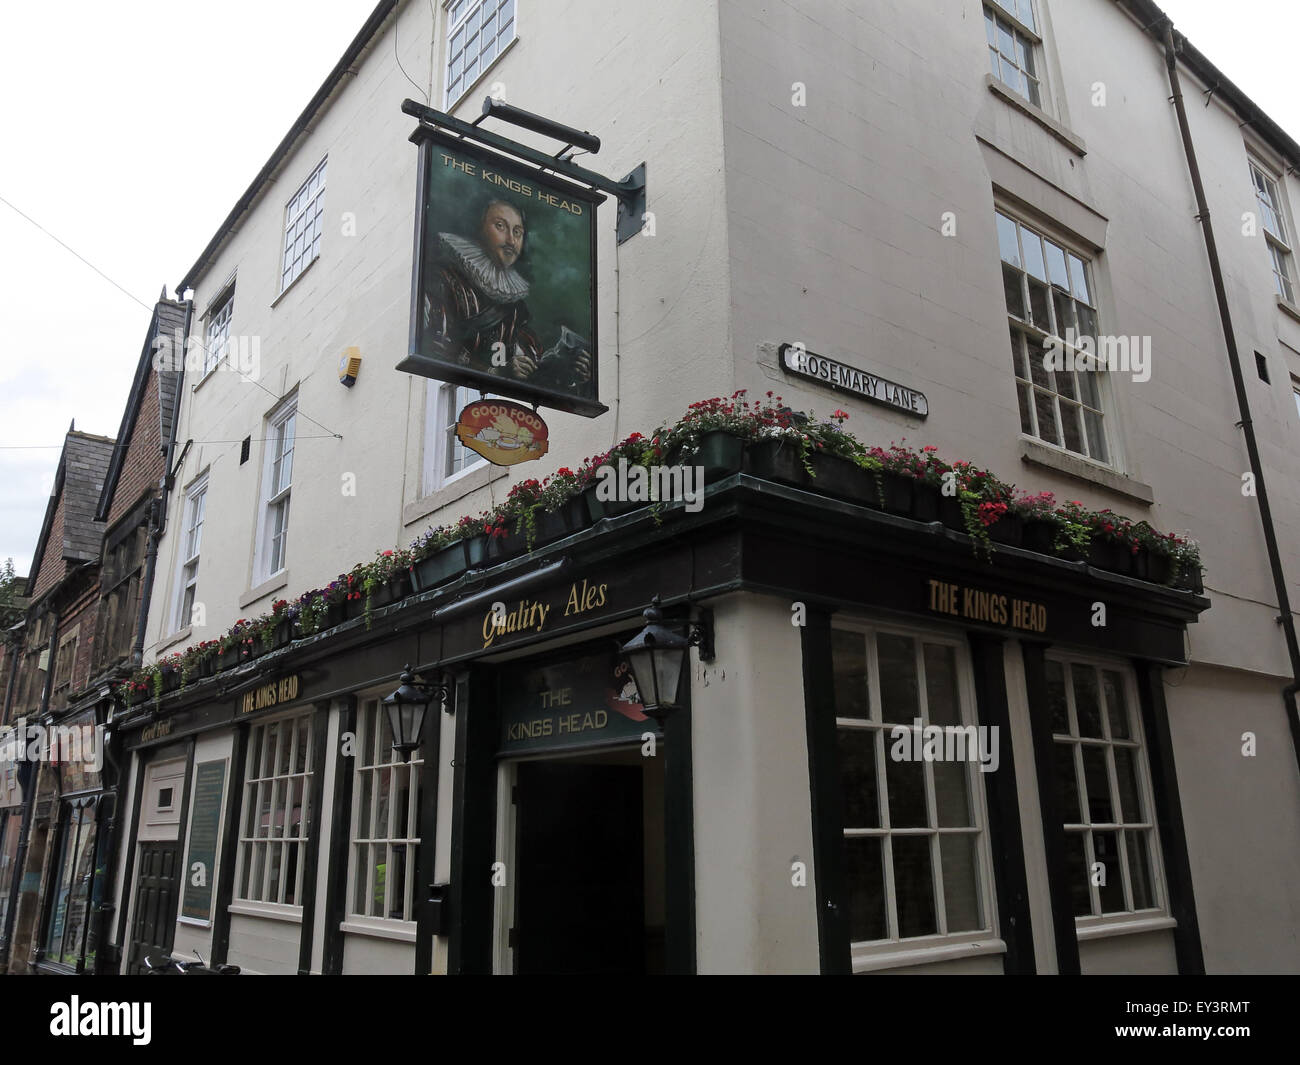 bar,bars,pubs,history,historic,English,British,the,outside,exterior,sign,pubsign,centre,ln,lane,Rosemary,Cumbria,England,UK,lake,district,CAMRA,real,ale,ales,realale,realales,Kings,10th,century,The Kings Head,Lake District,Fisher St,Fisher Street,10th Century,GoTonySmith,Buy Pictures of,Buy Images Of,Kings Head Carlisle